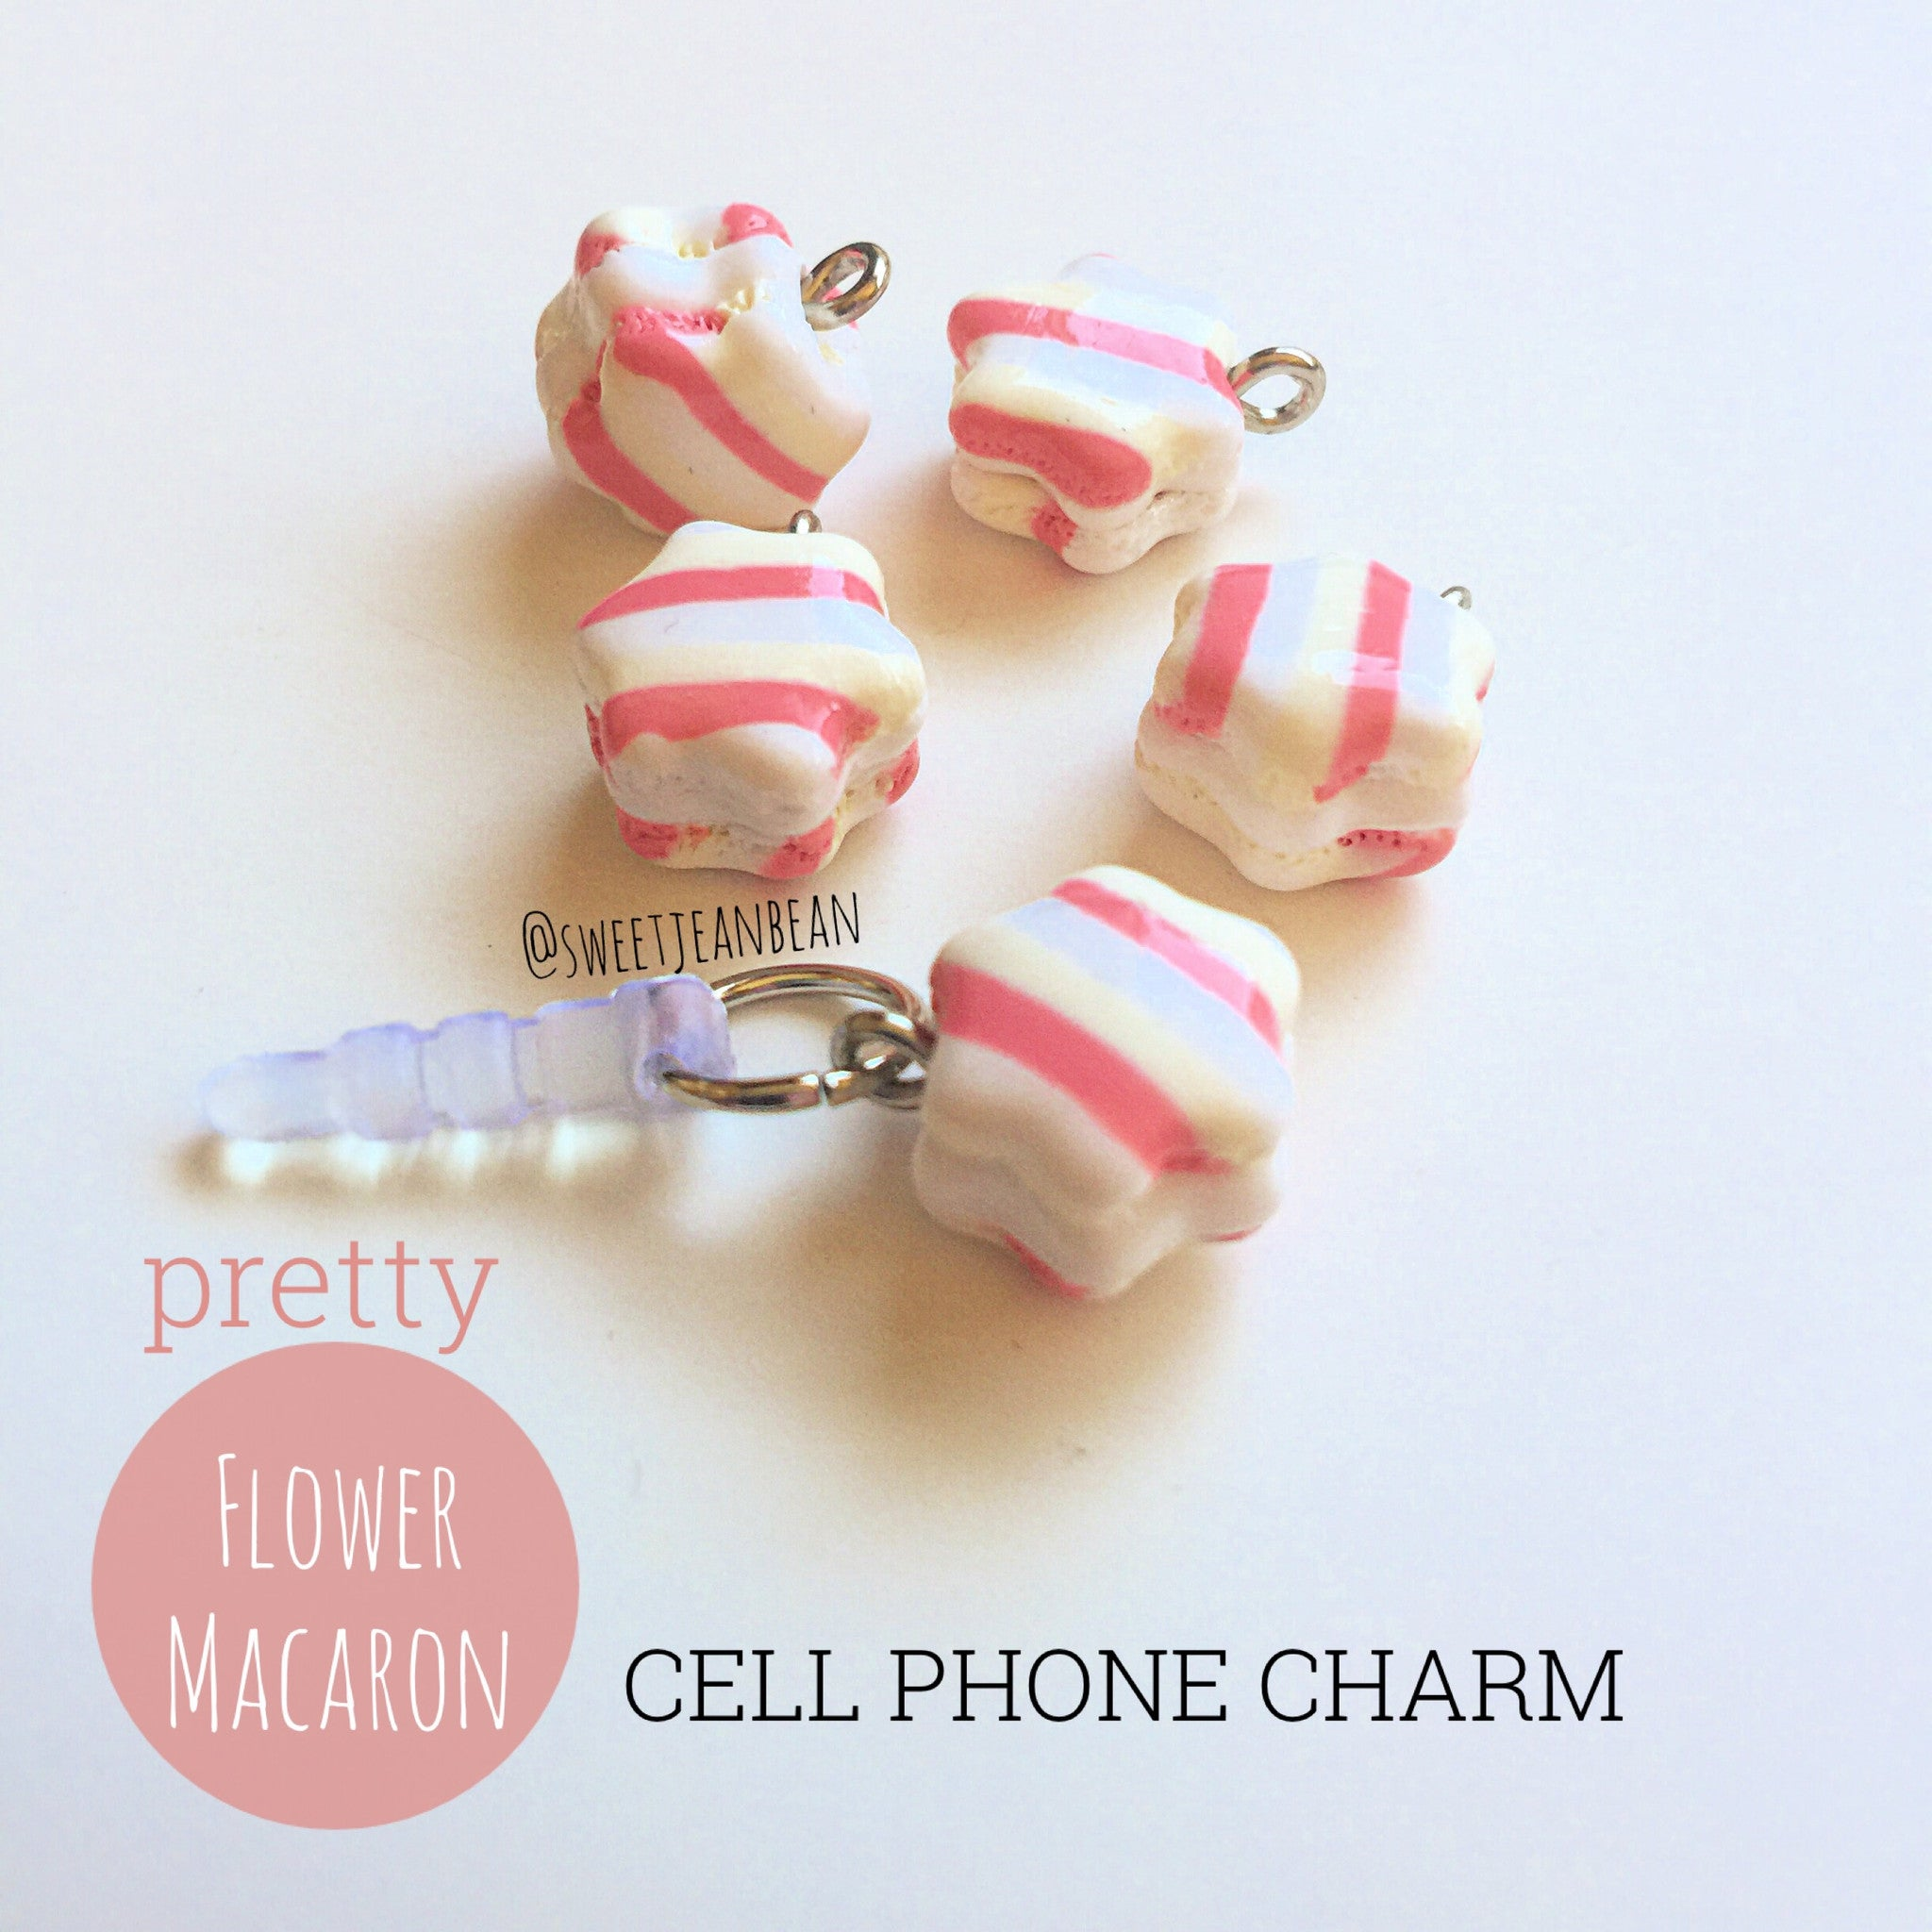 Flower Macaron Cell Phone Charm